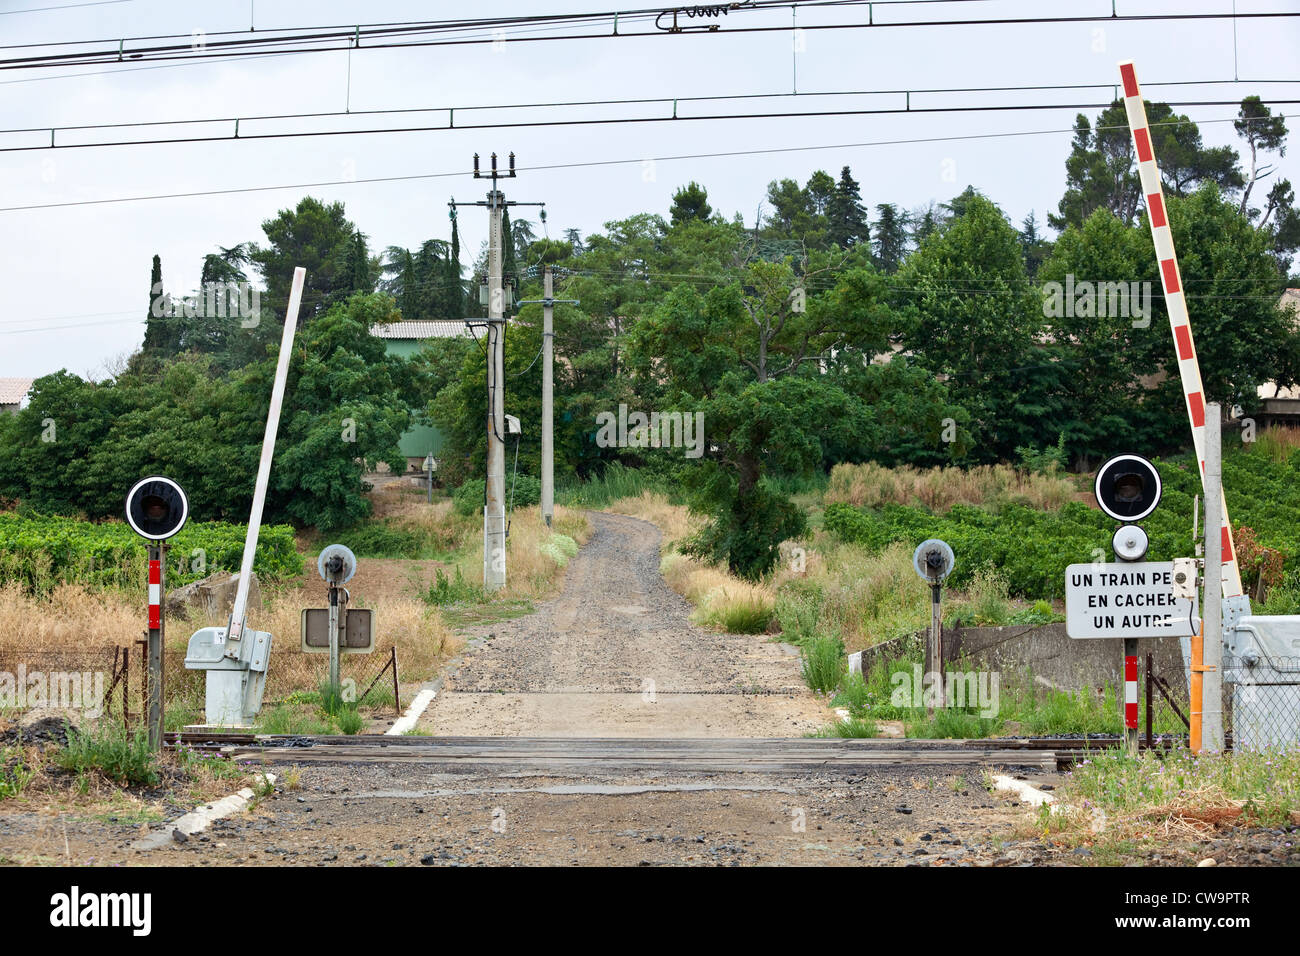 An unmanned level crossing in the South of France Stock Photo